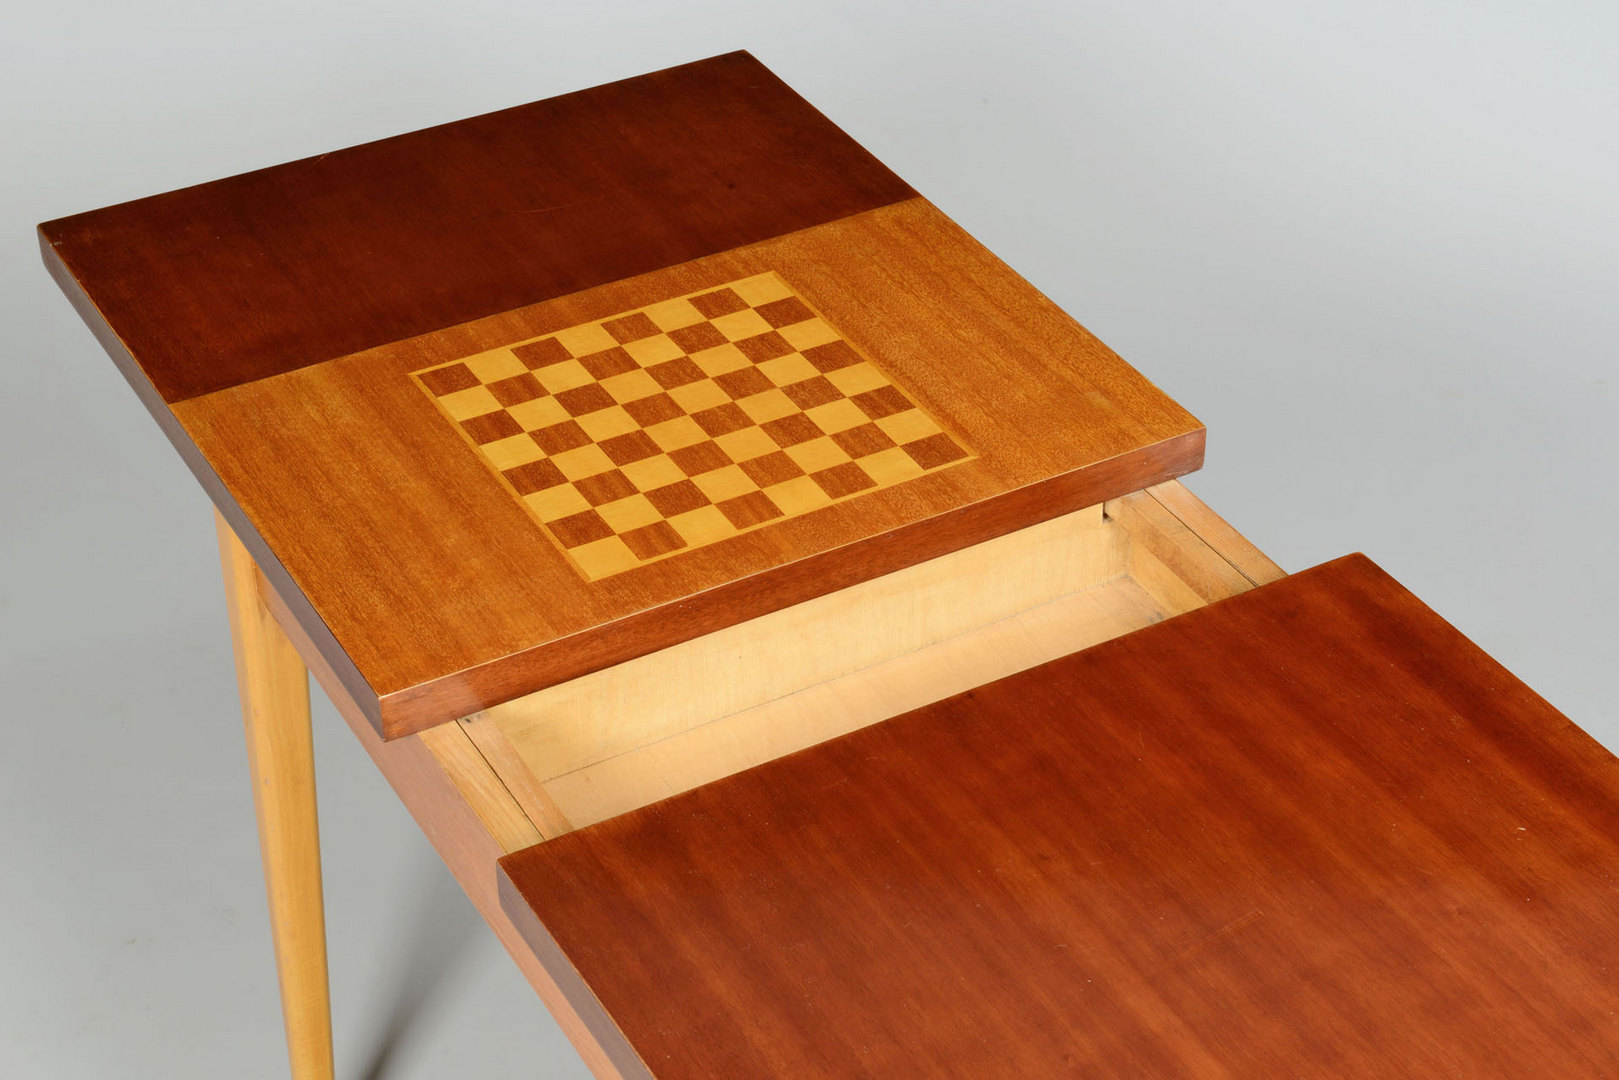 Lot 3088242: 1950 Modern Czech Game Table